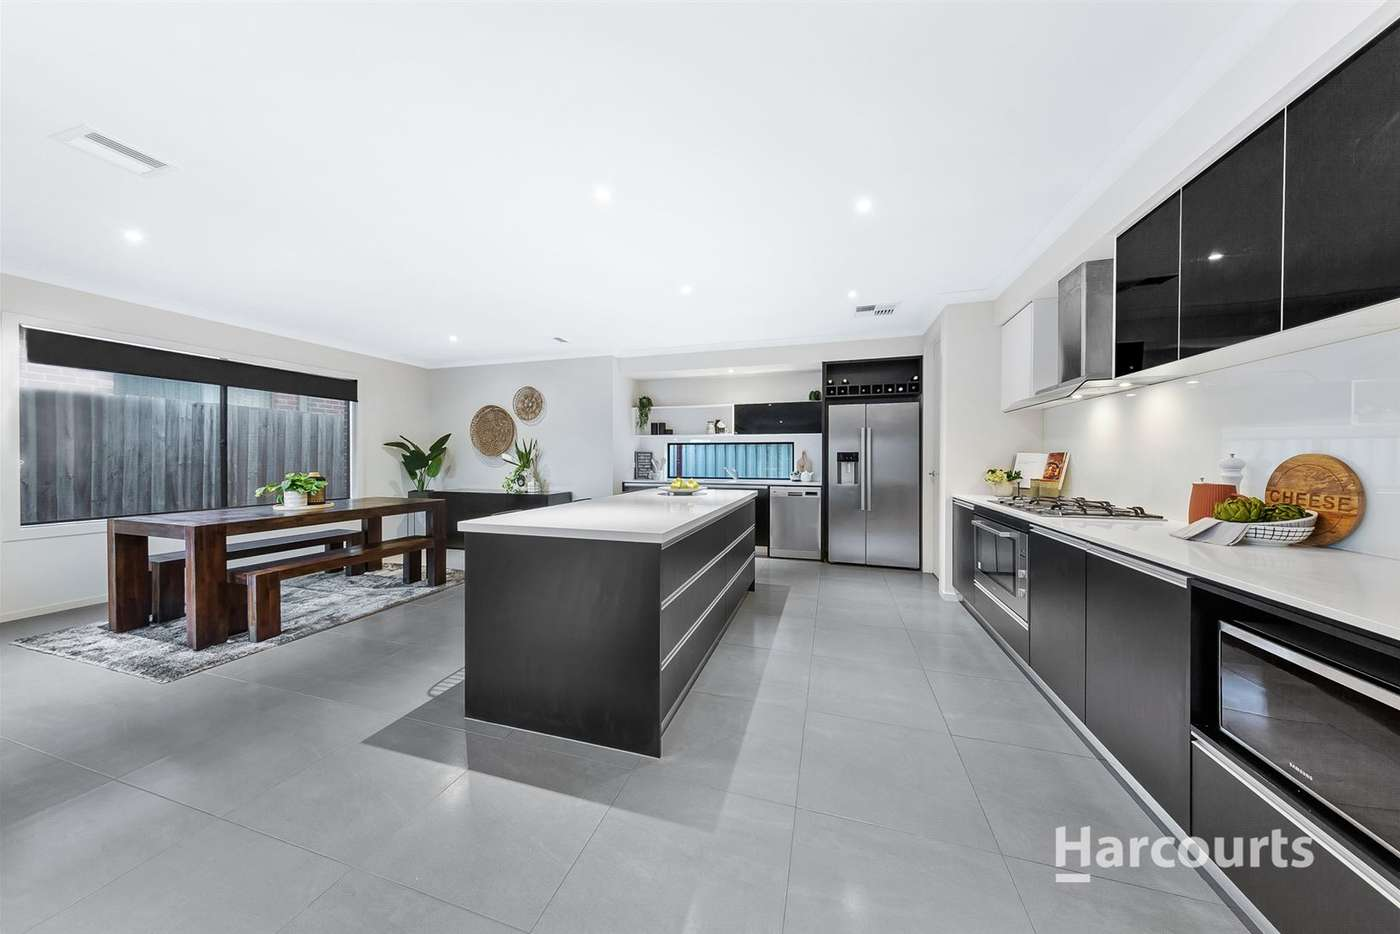 Sixth view of Homely house listing, 1 Waterview Drive, Cairnlea VIC 3023